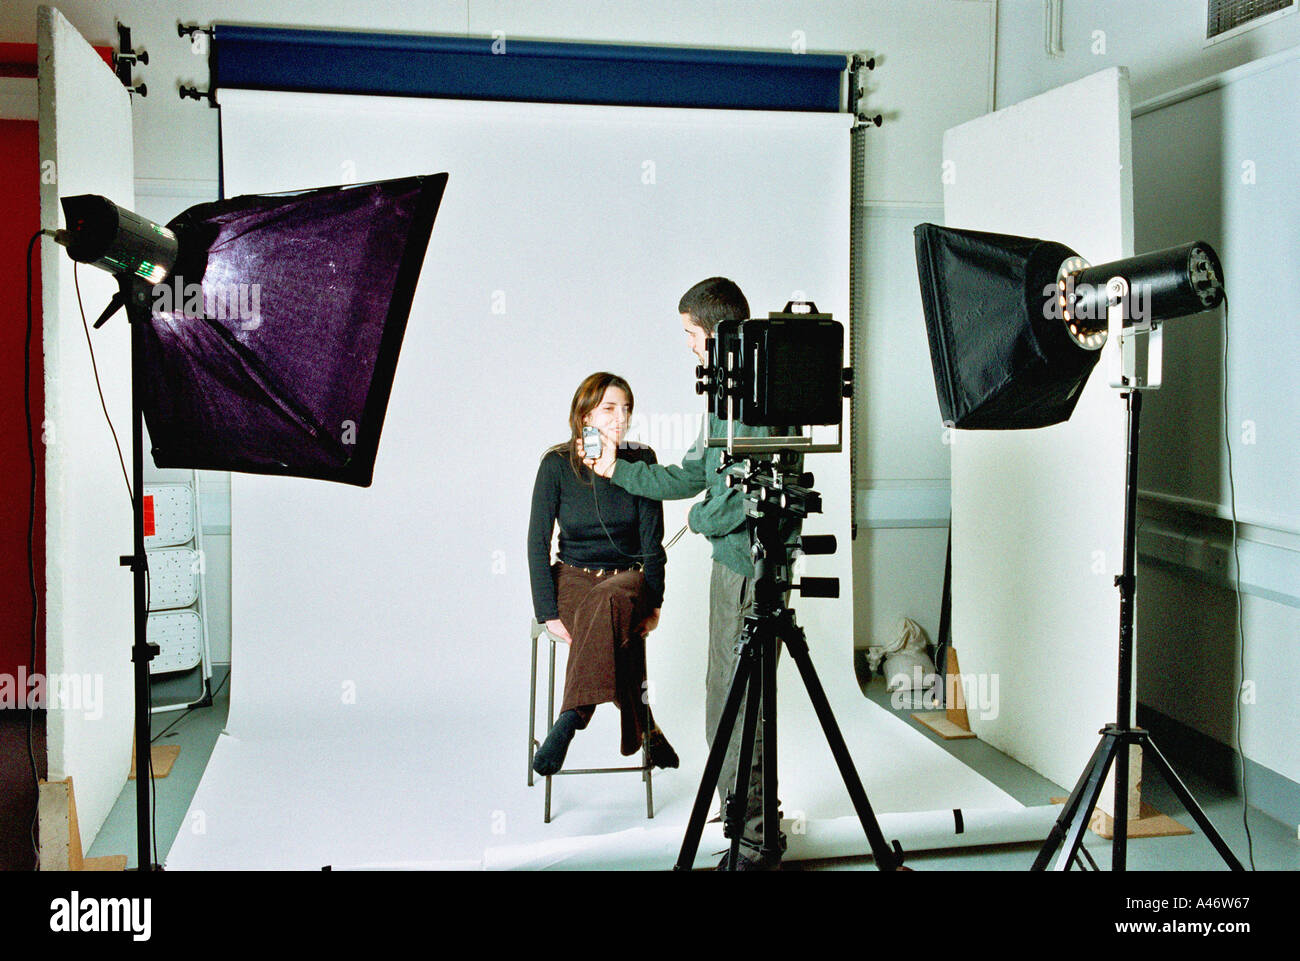 Photographer in studio - Stock Image